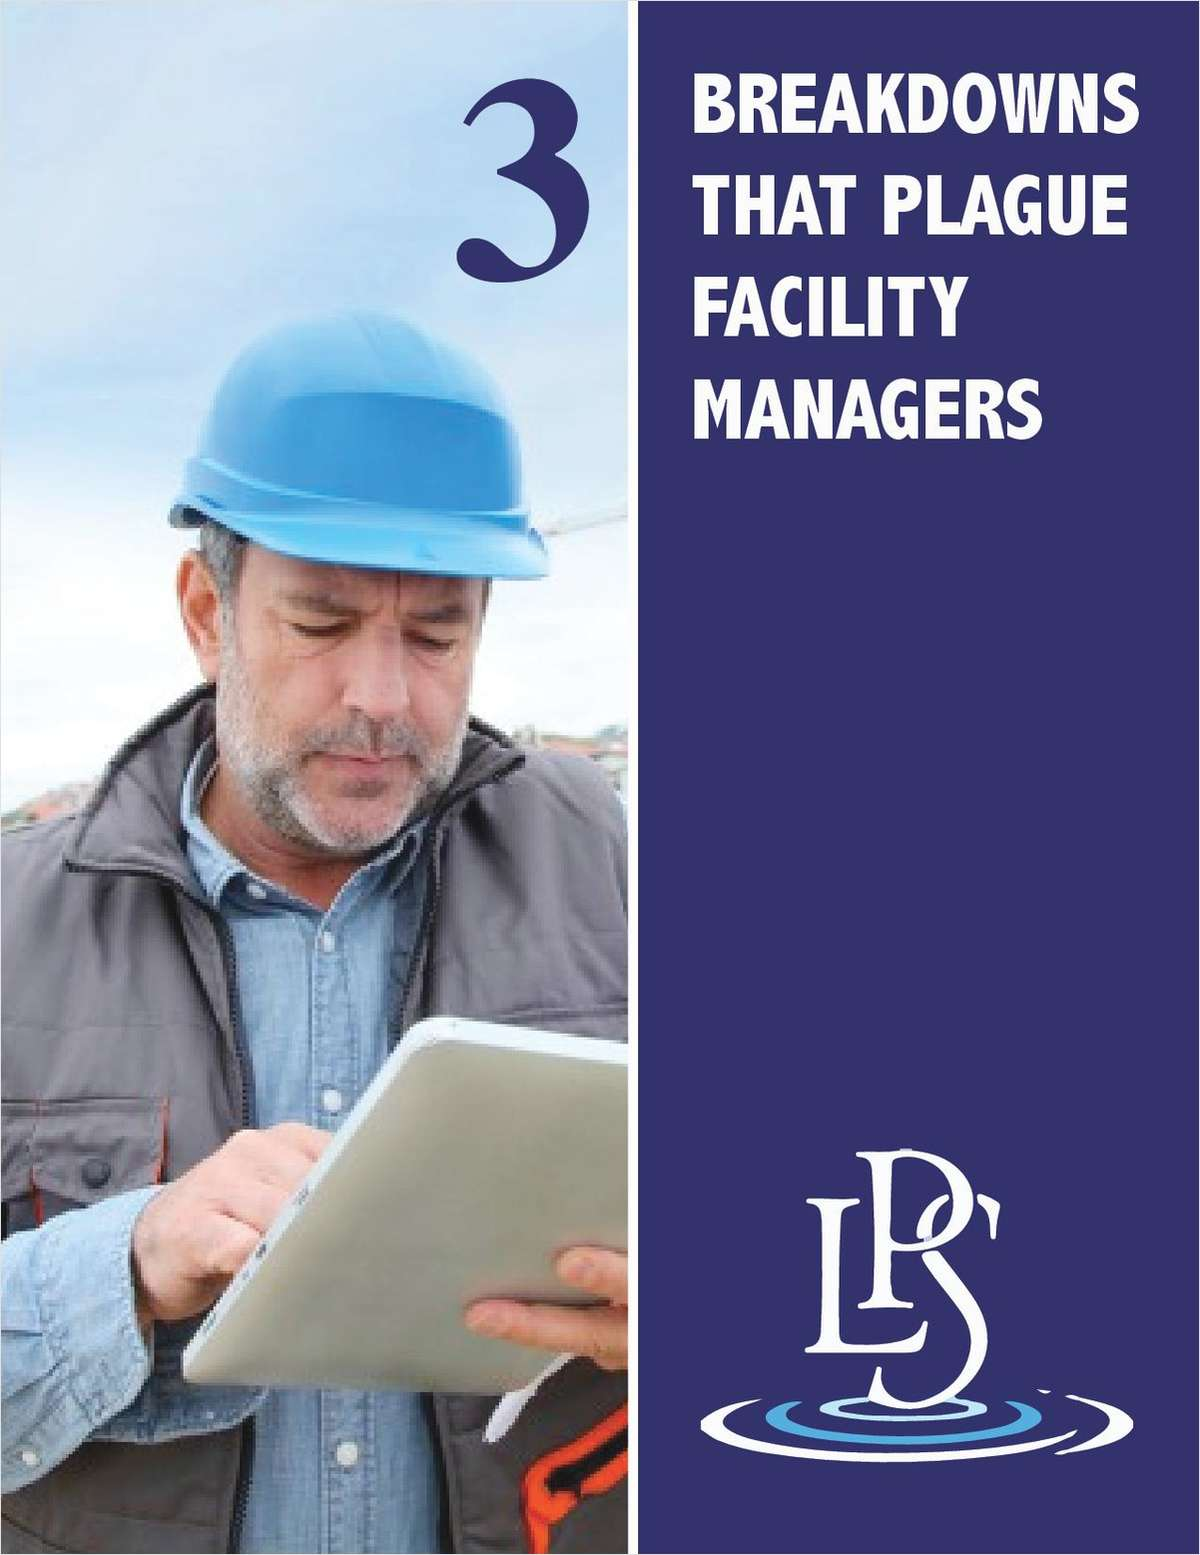 3 Breakdowns that Plague Facility Managers